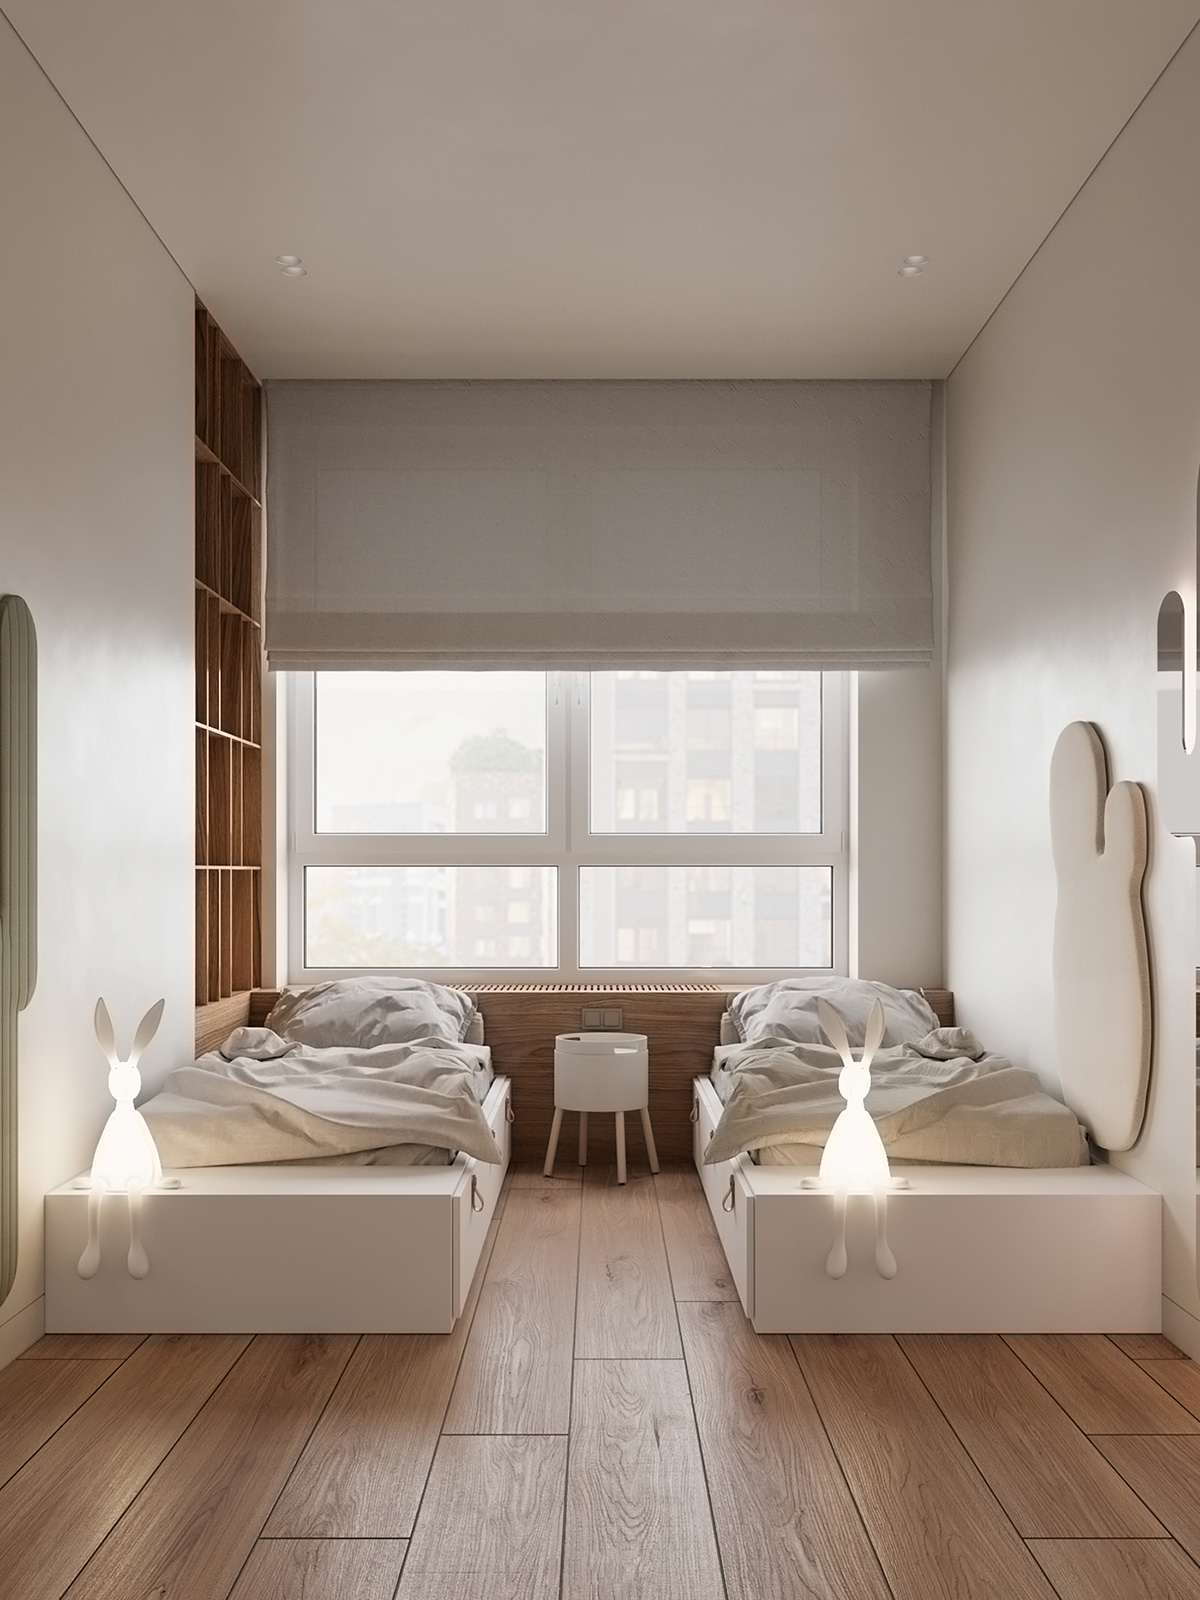 Wooden Floor with Cool Bunny Lights For Kids Shared Bedroom